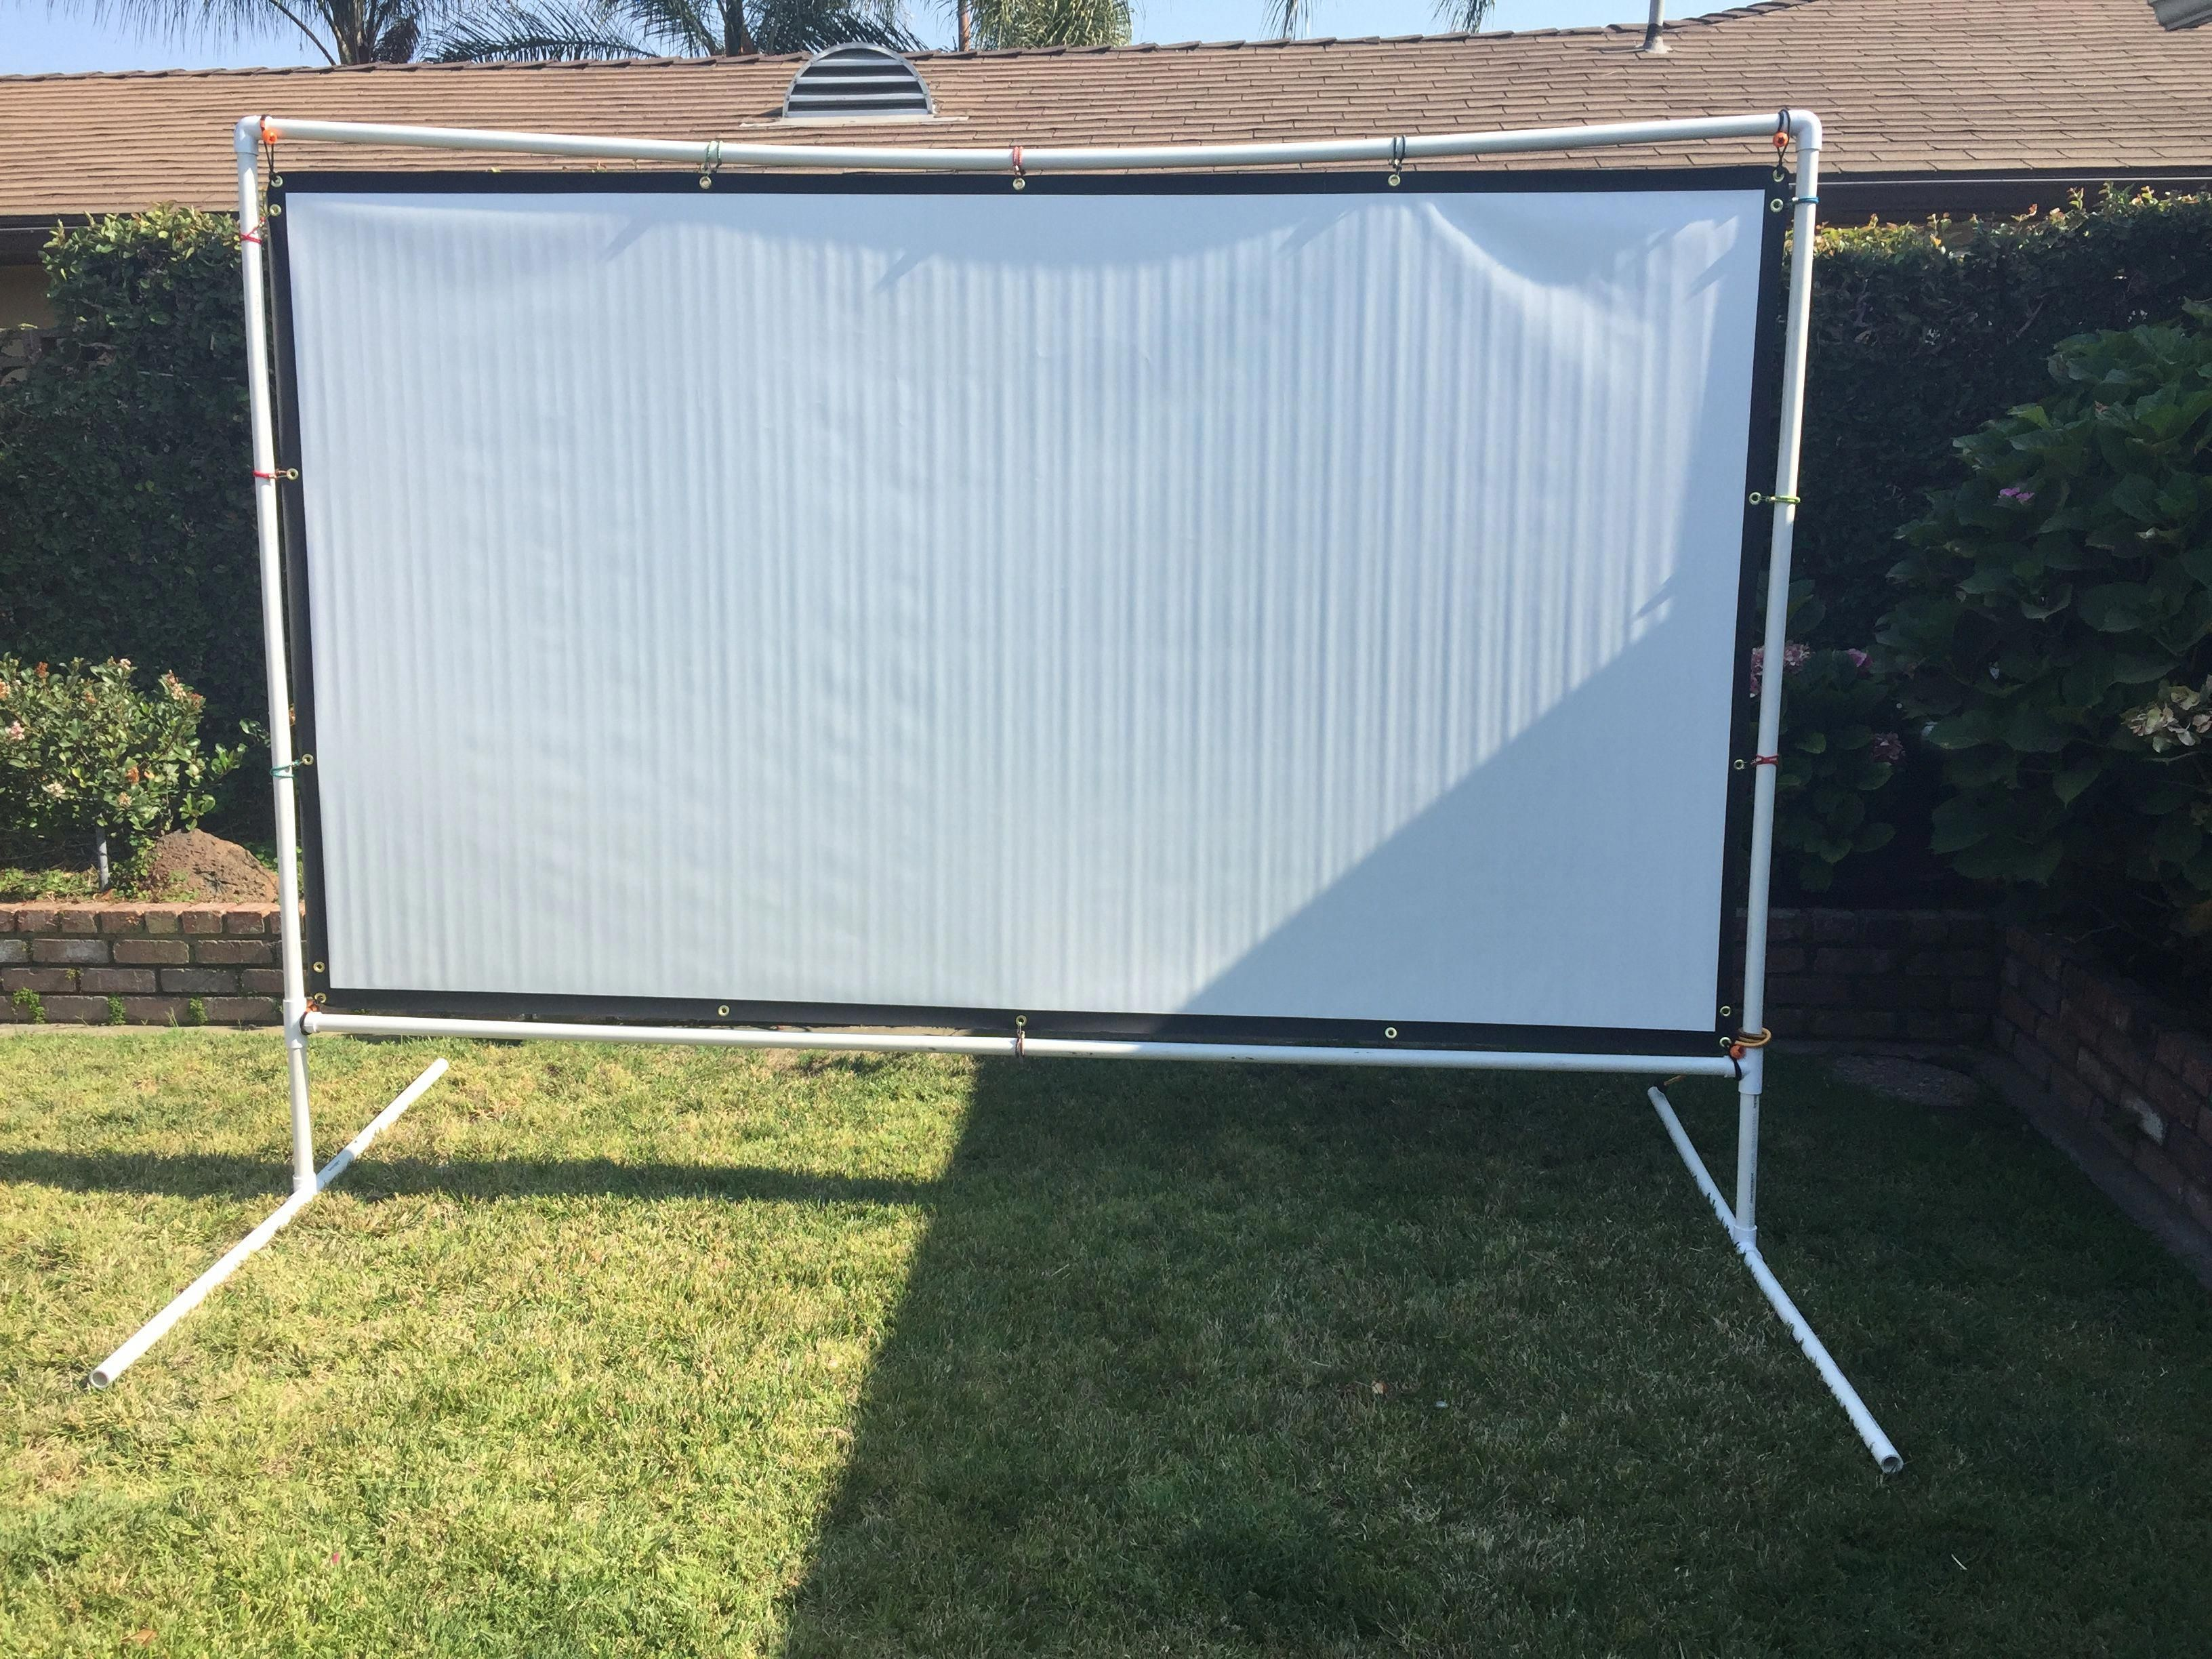 120 Projector Screen With Pvc Frame Projectorscreen Projector